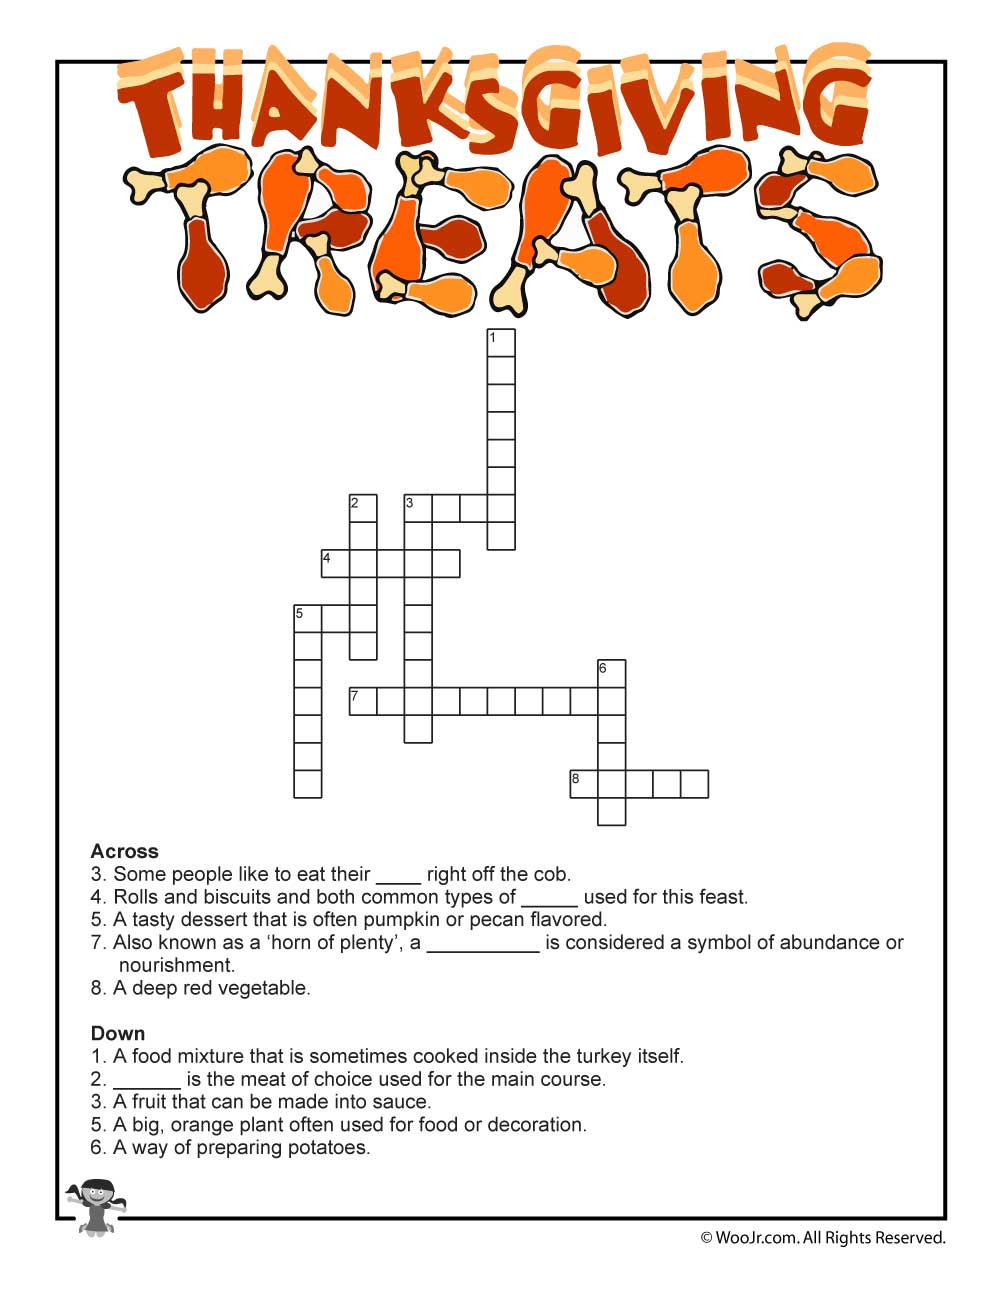 Thanksgiving Crossword Puzzle | Woo! Jr. Kids Activities - Printable Thanksgiving Crossword Puzzles For Adults